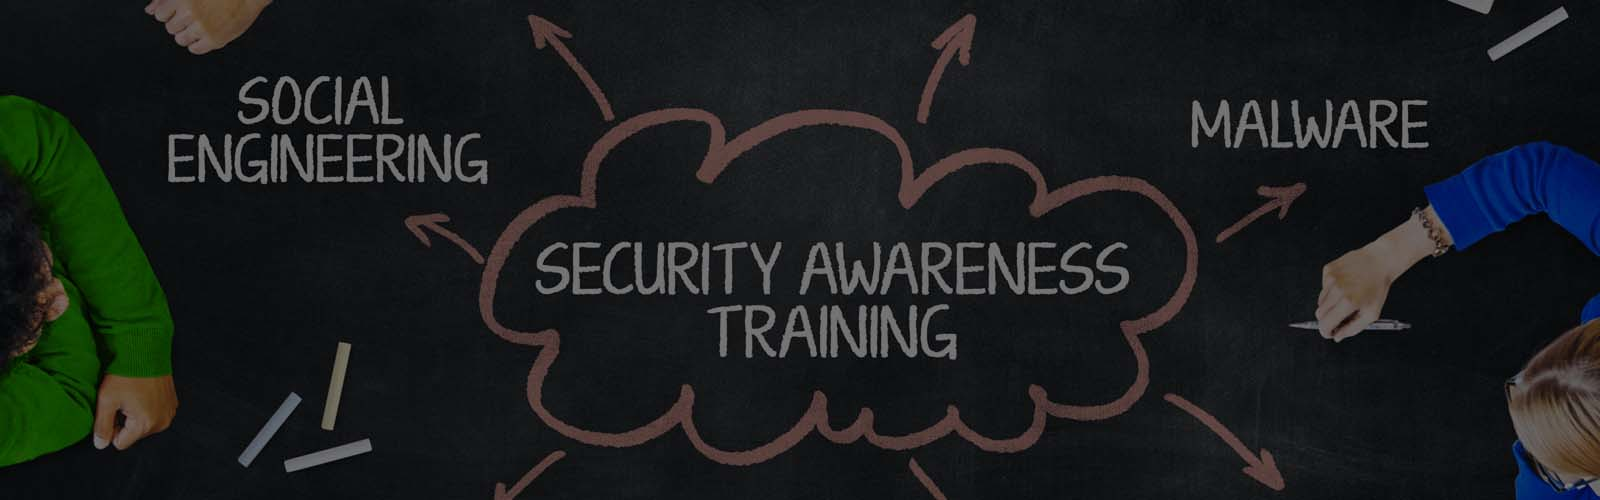 MSSPs should provide Security Awareness Training